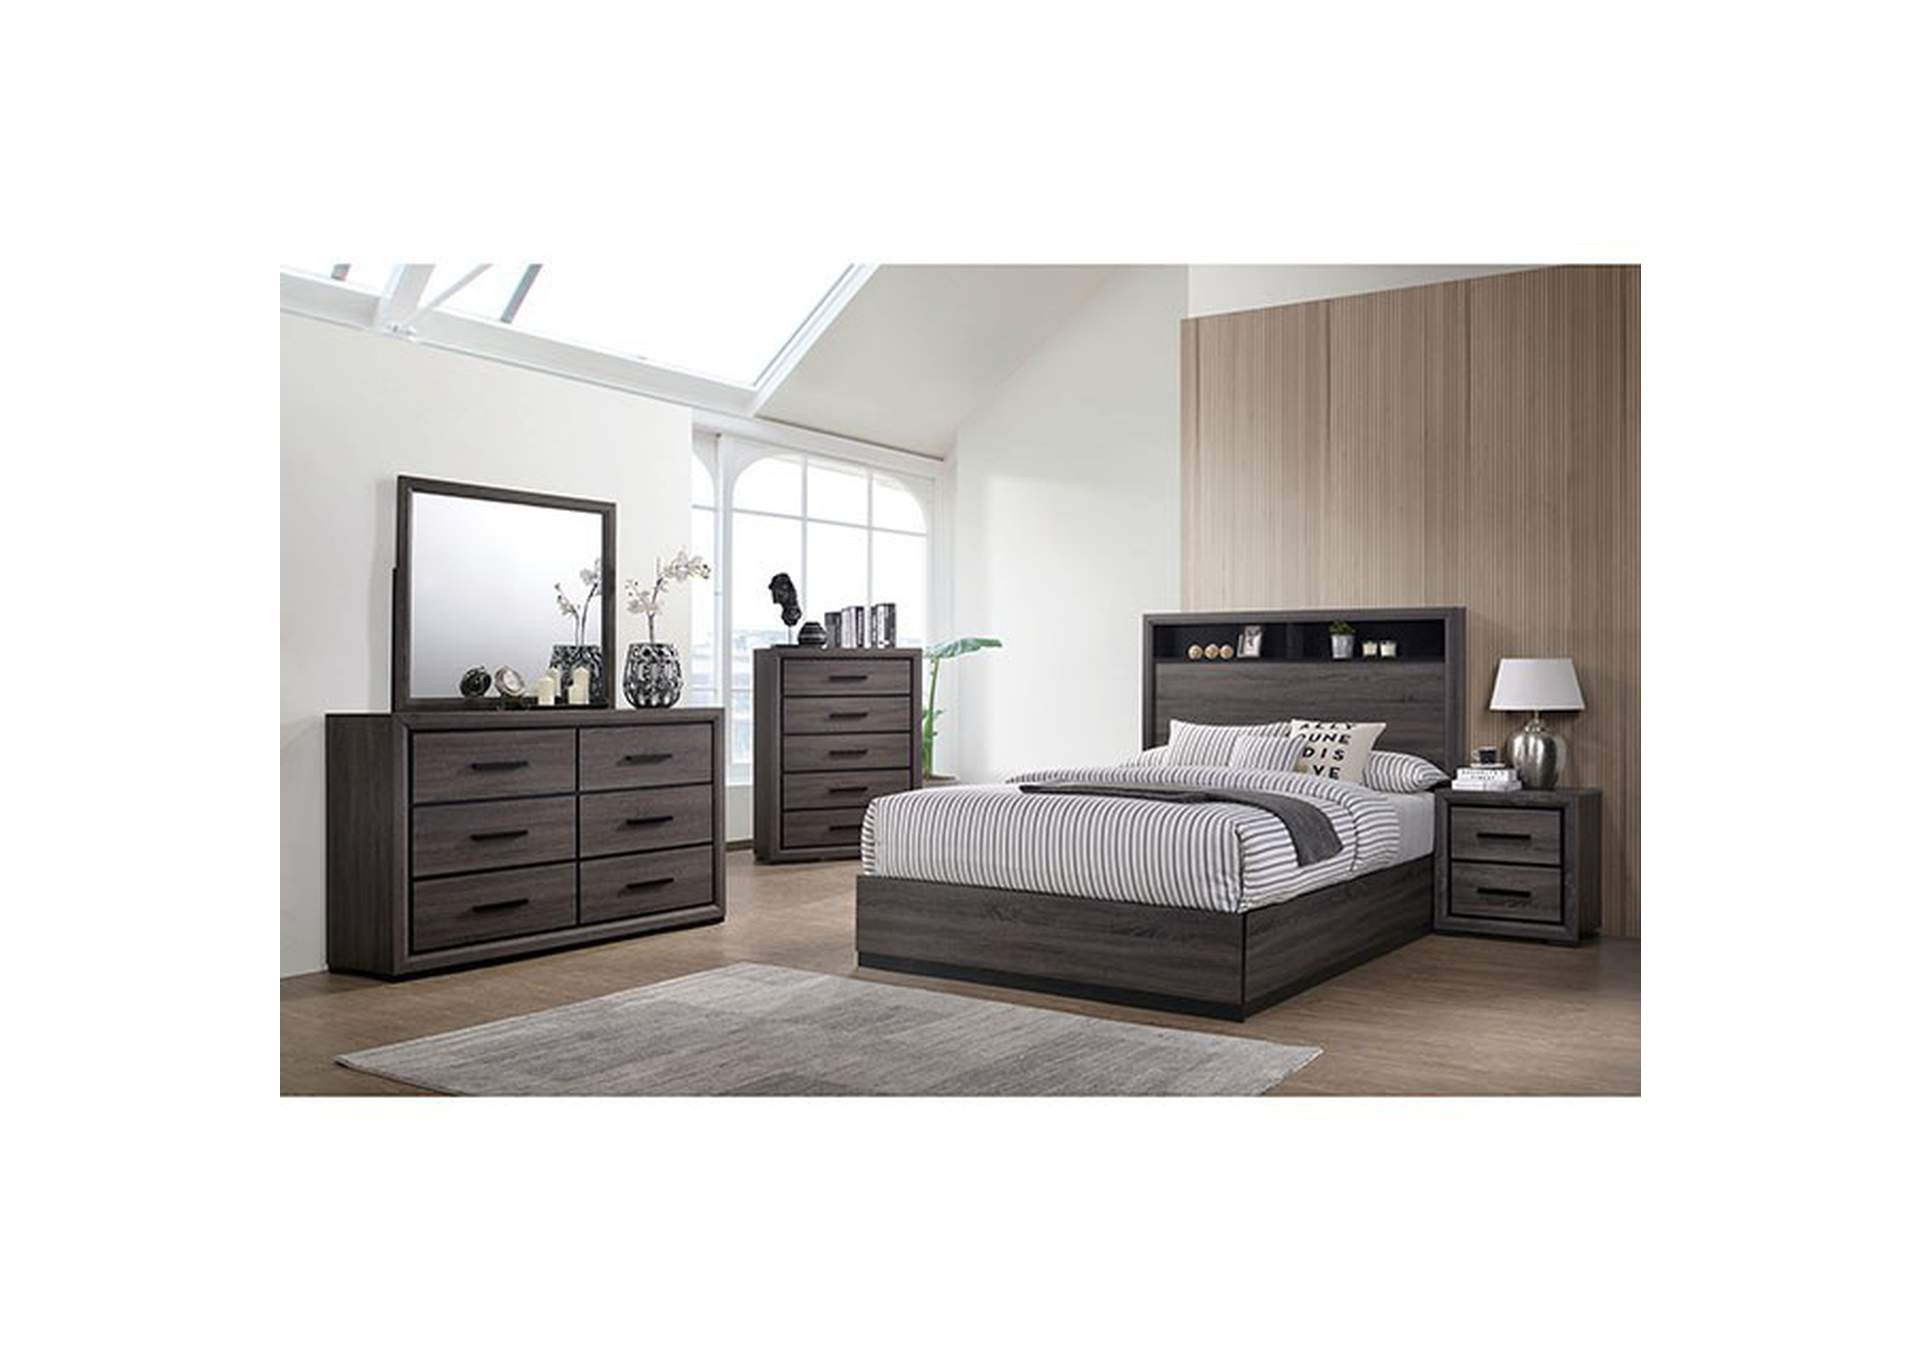 Conwy Gray Eastern King Storage Platform Bed,Furniture of America